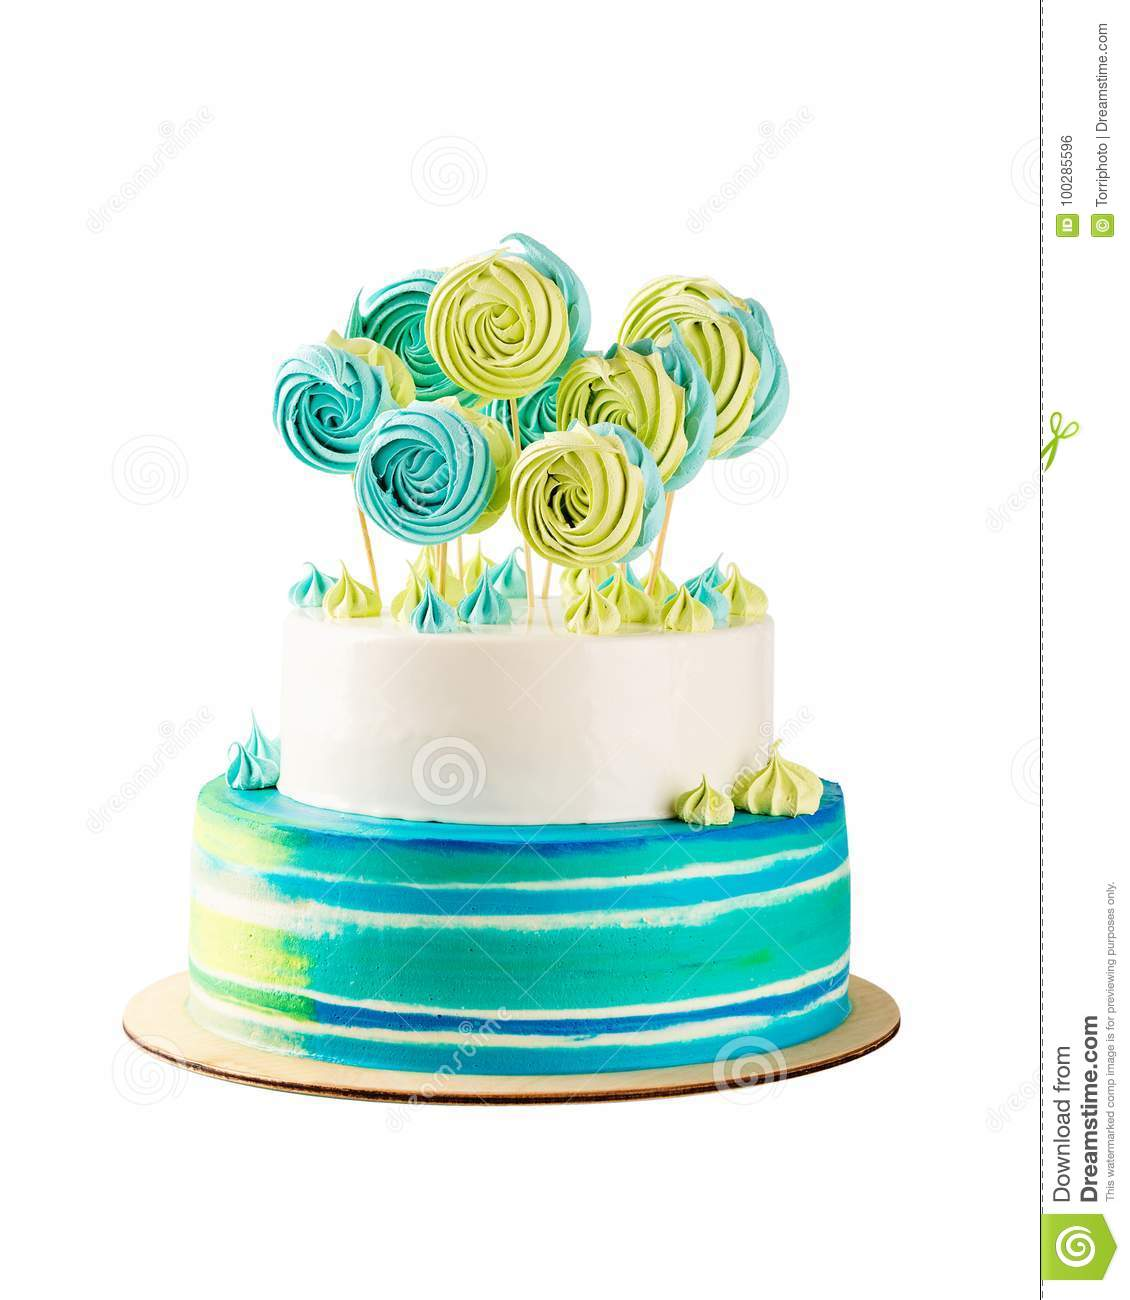 Terrific Blue And Green Tiered Birthday Cake Isolated On White Stock Photo Funny Birthday Cards Online Inifofree Goldxyz